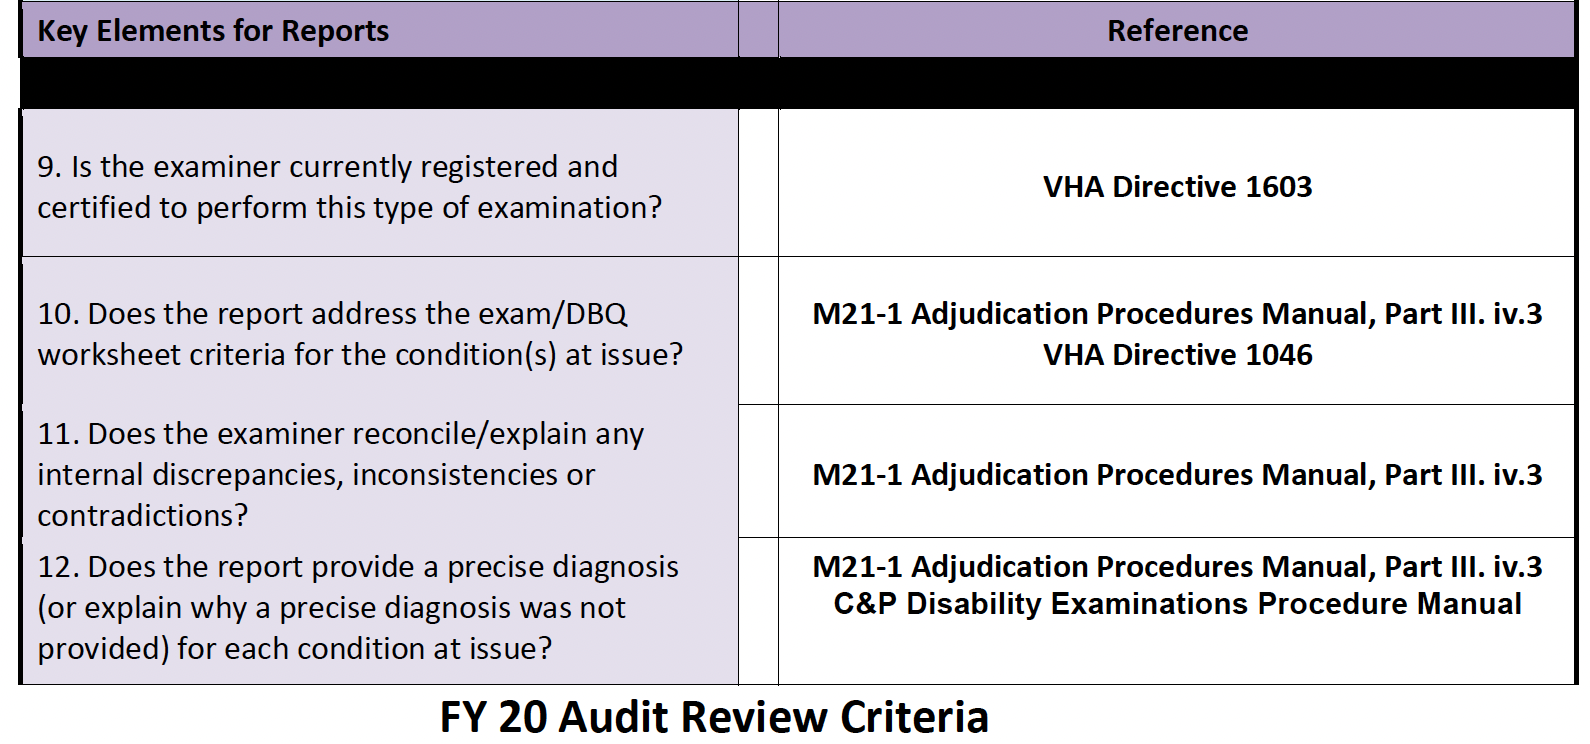 FY20 Audit Review Tool screen shot questions 9-12